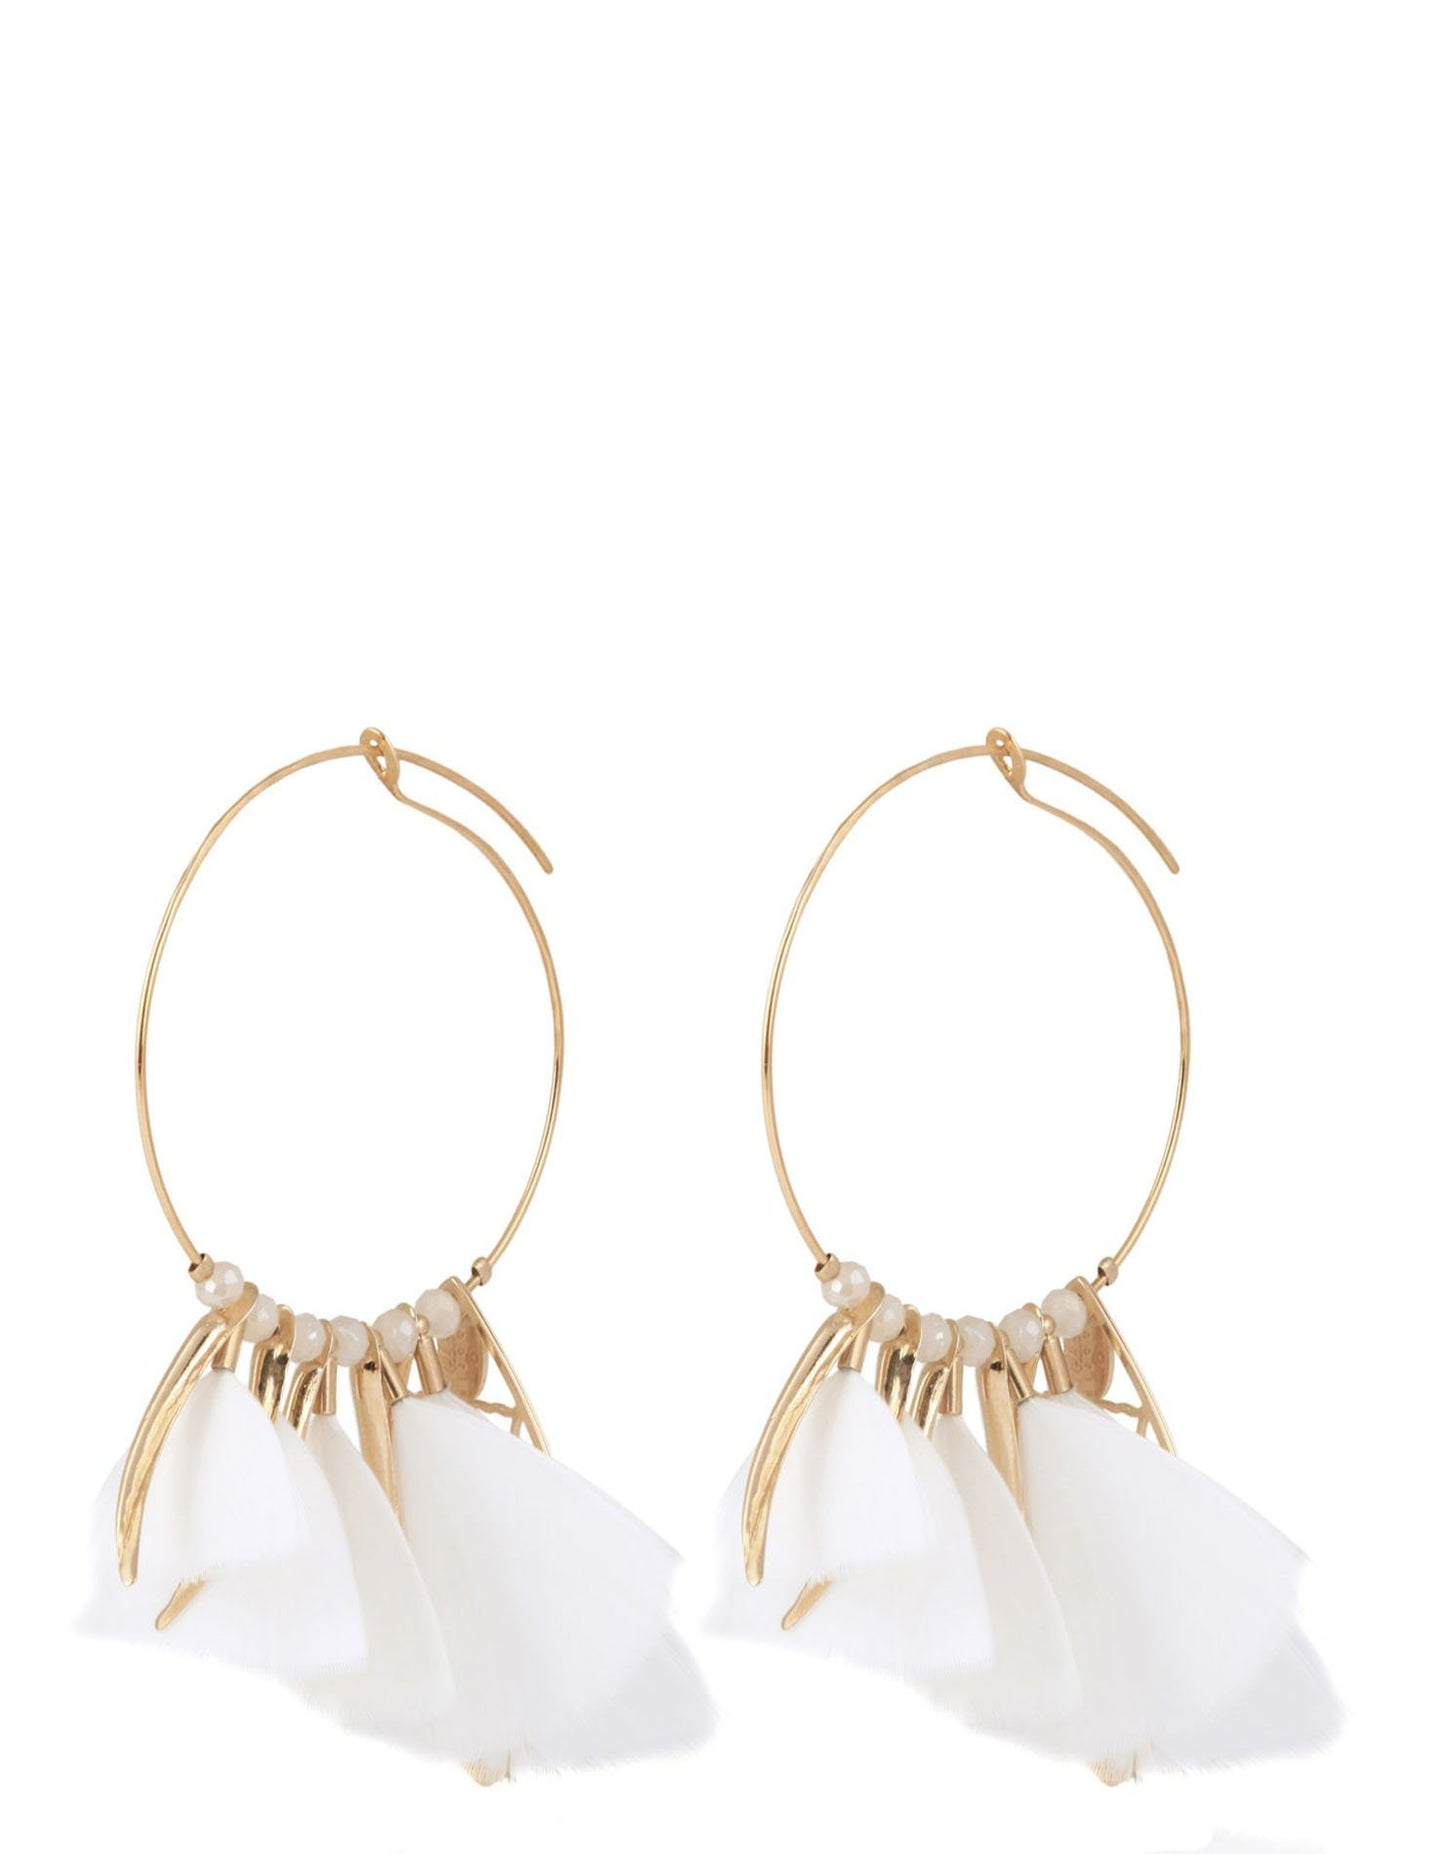 WHITE FEATHER HOOP EARRINGS